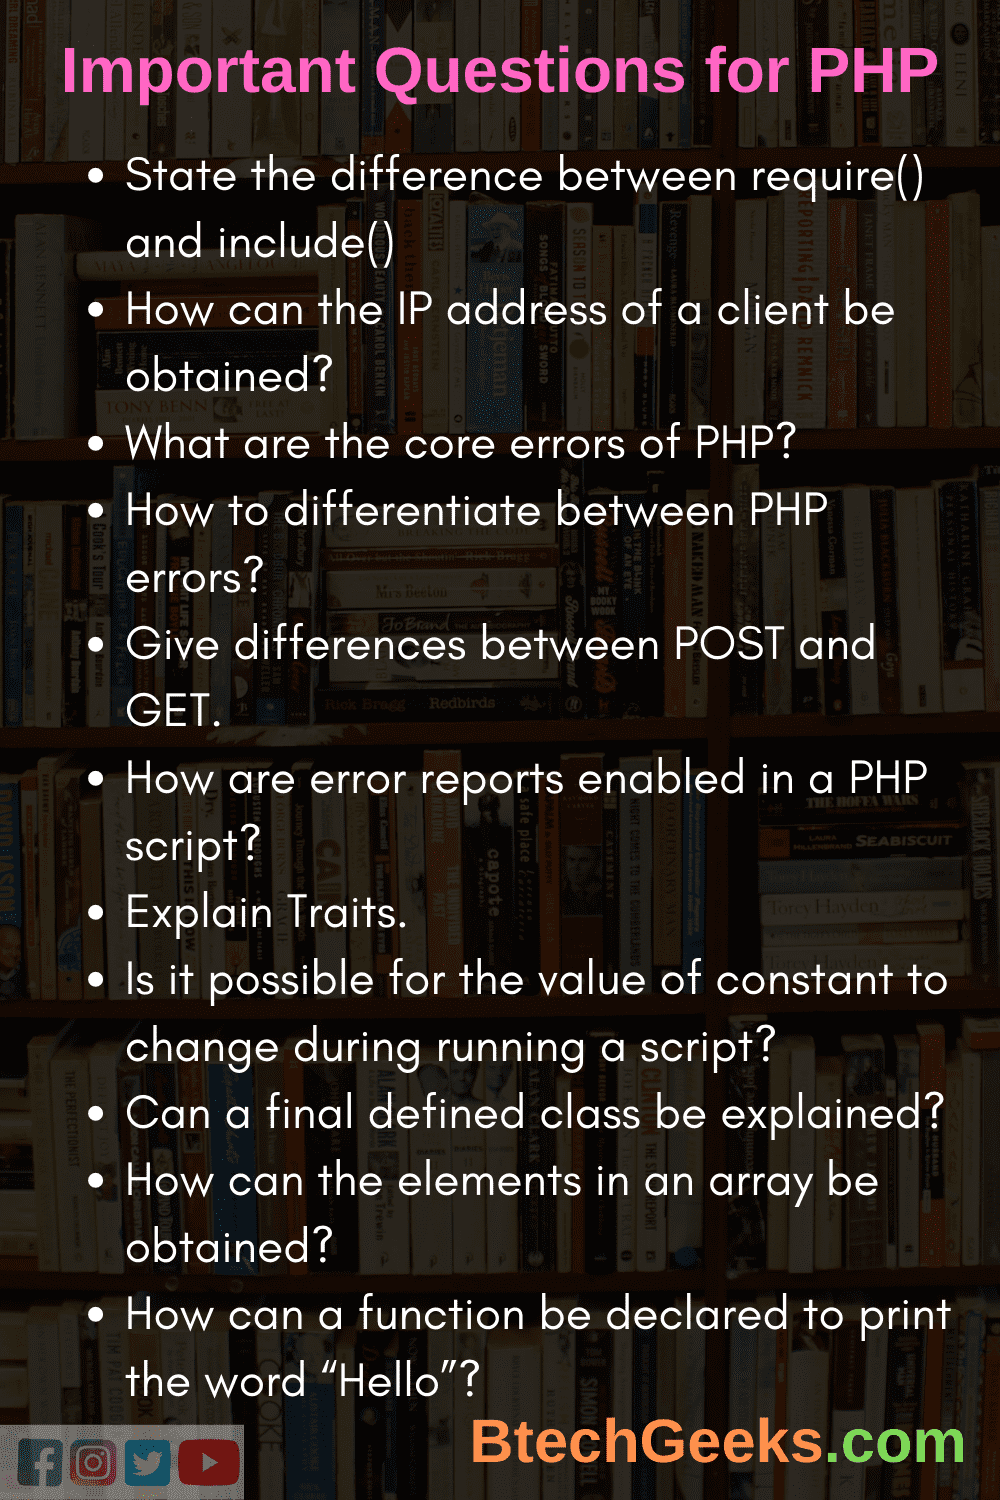 Important Questions for PHP